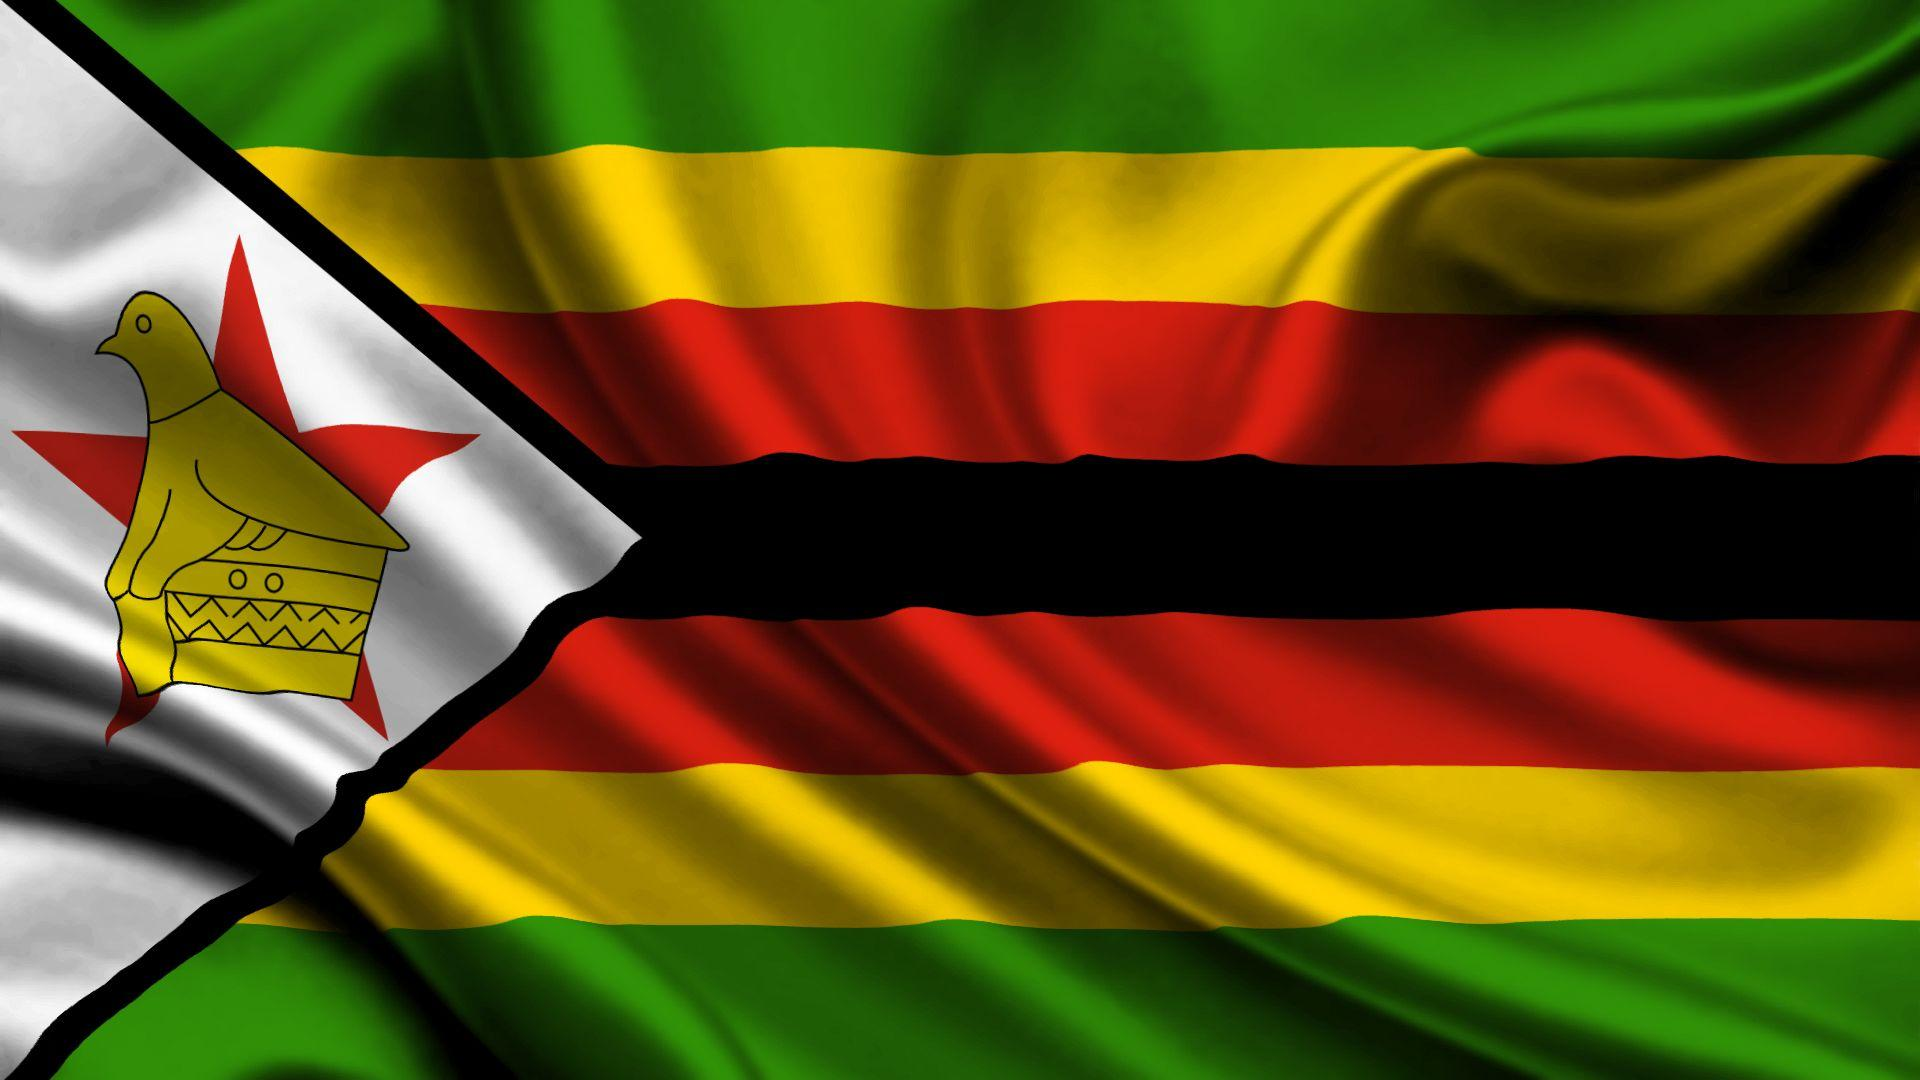 1 Flag of Zimbabwe HD Wallpapers | Backgrounds - Wallpaper Abyss